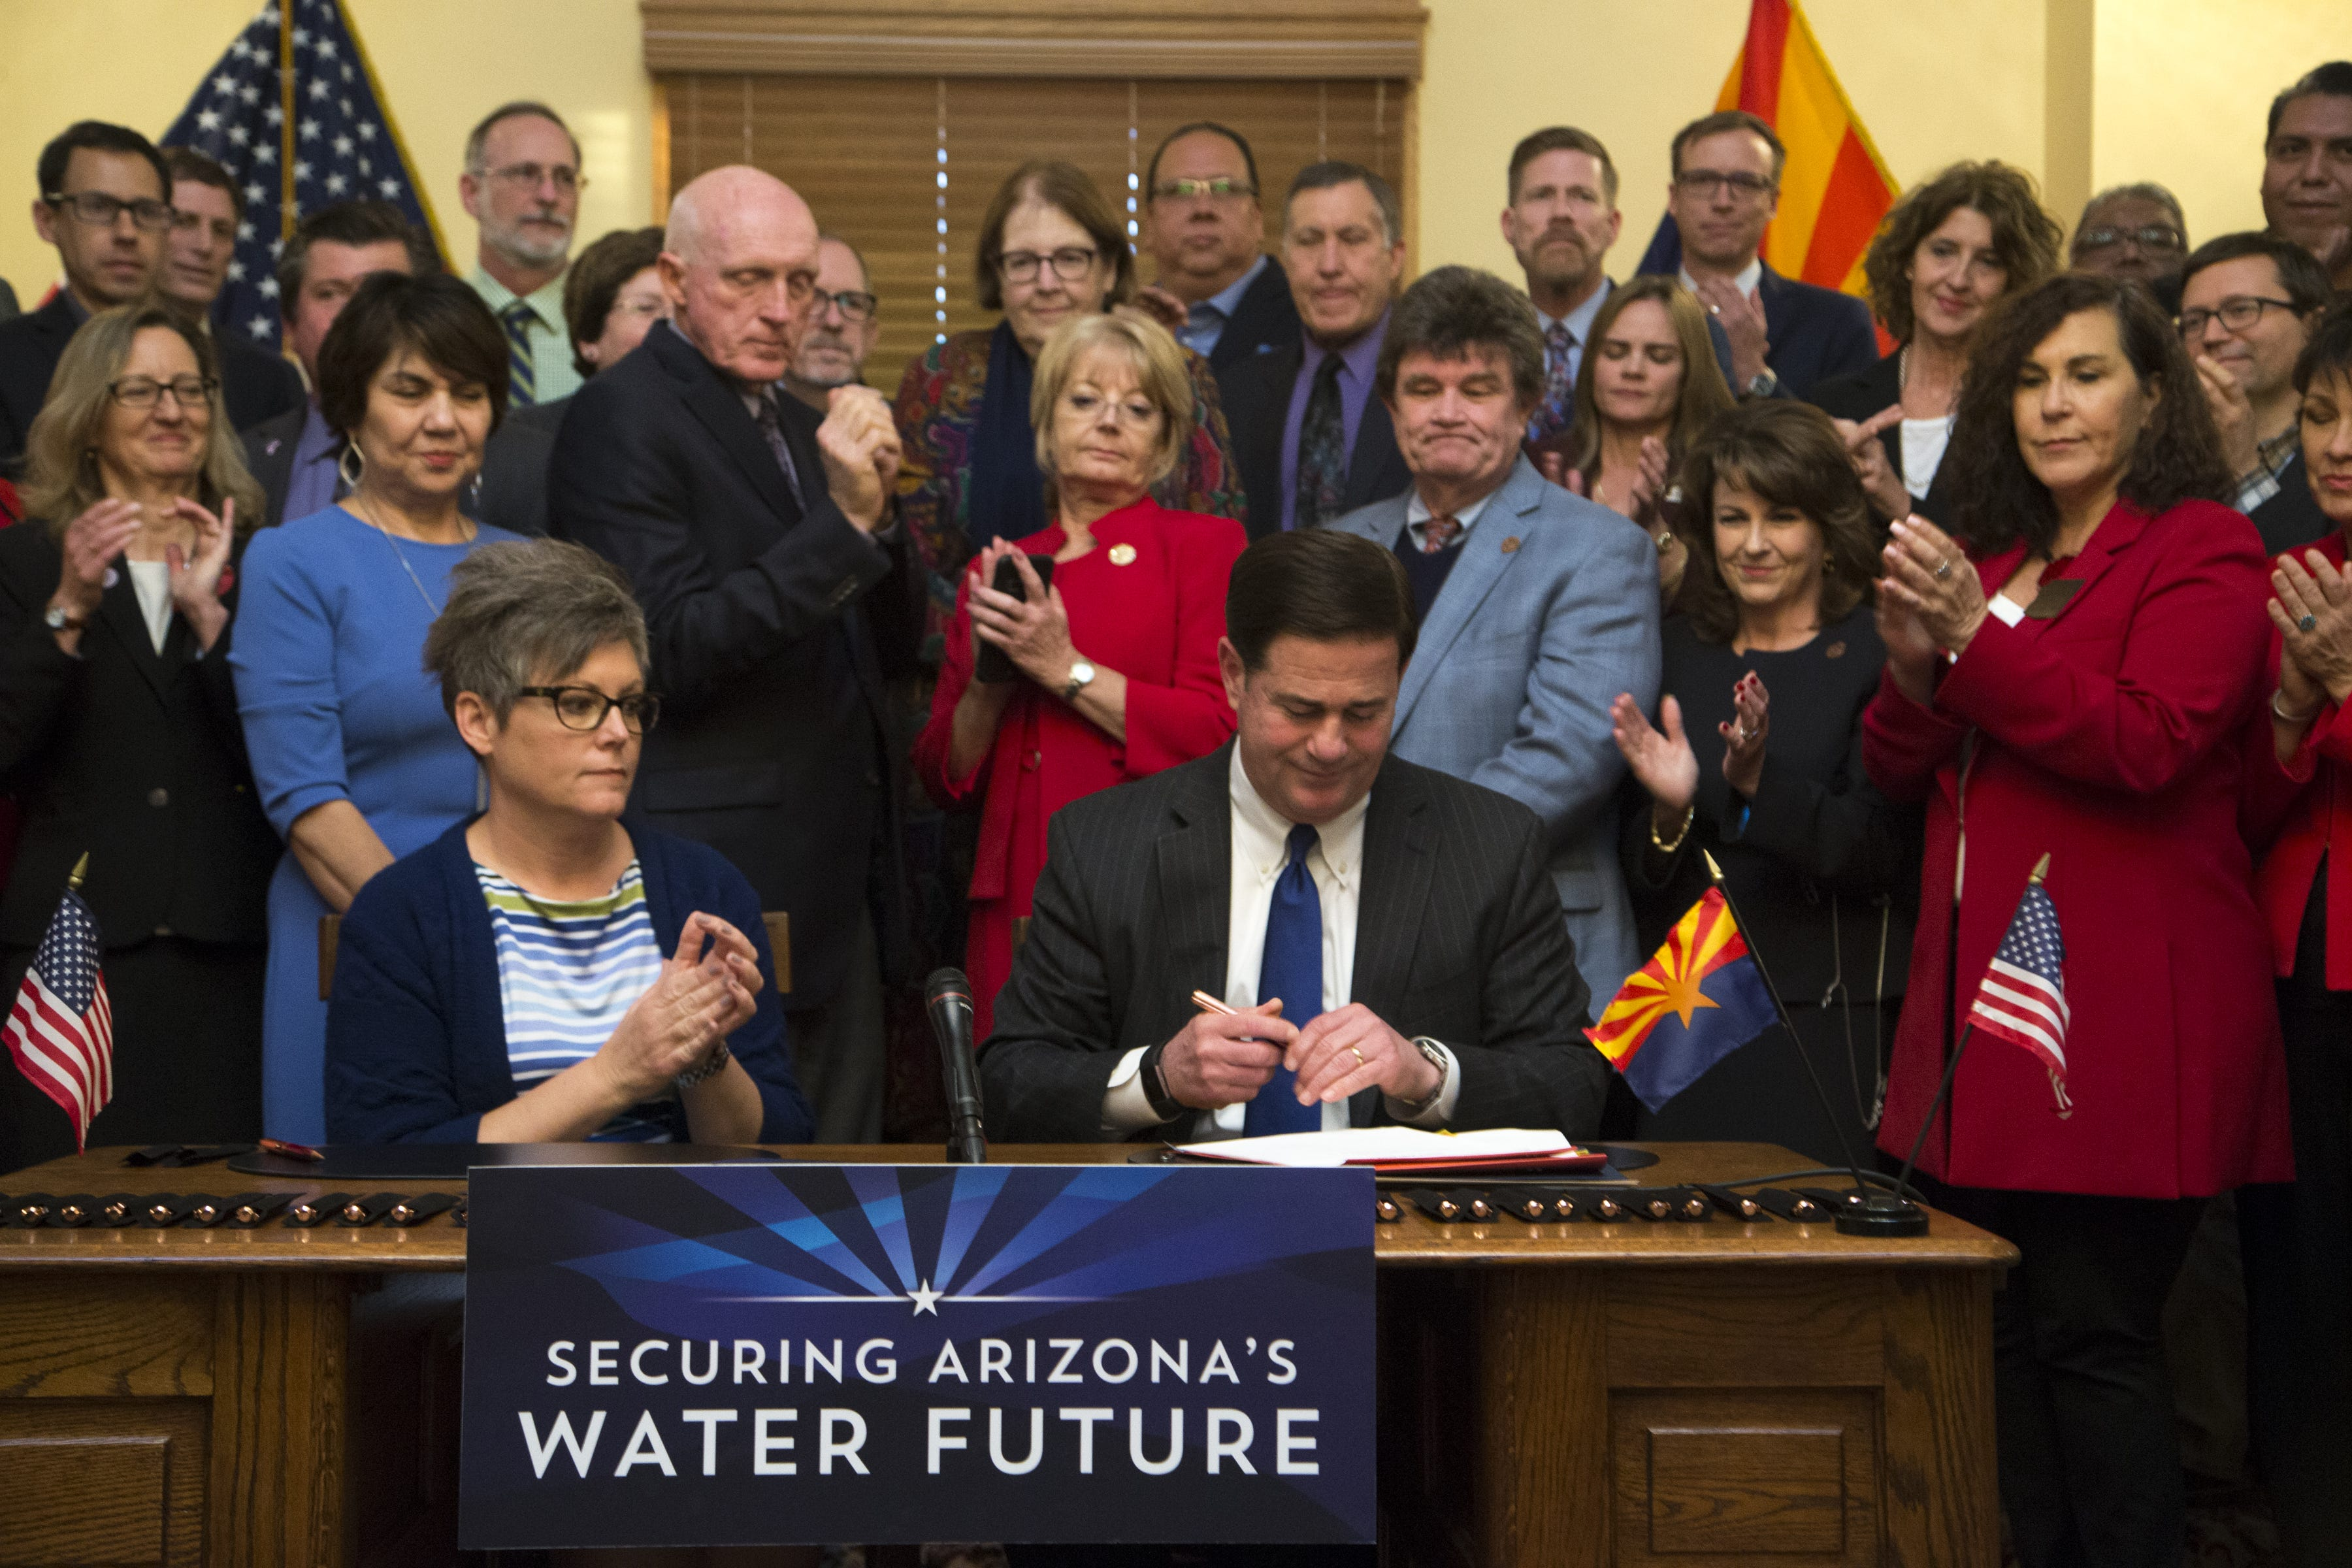 Drought Contingency Plan isn't an example of Arizona doing water right